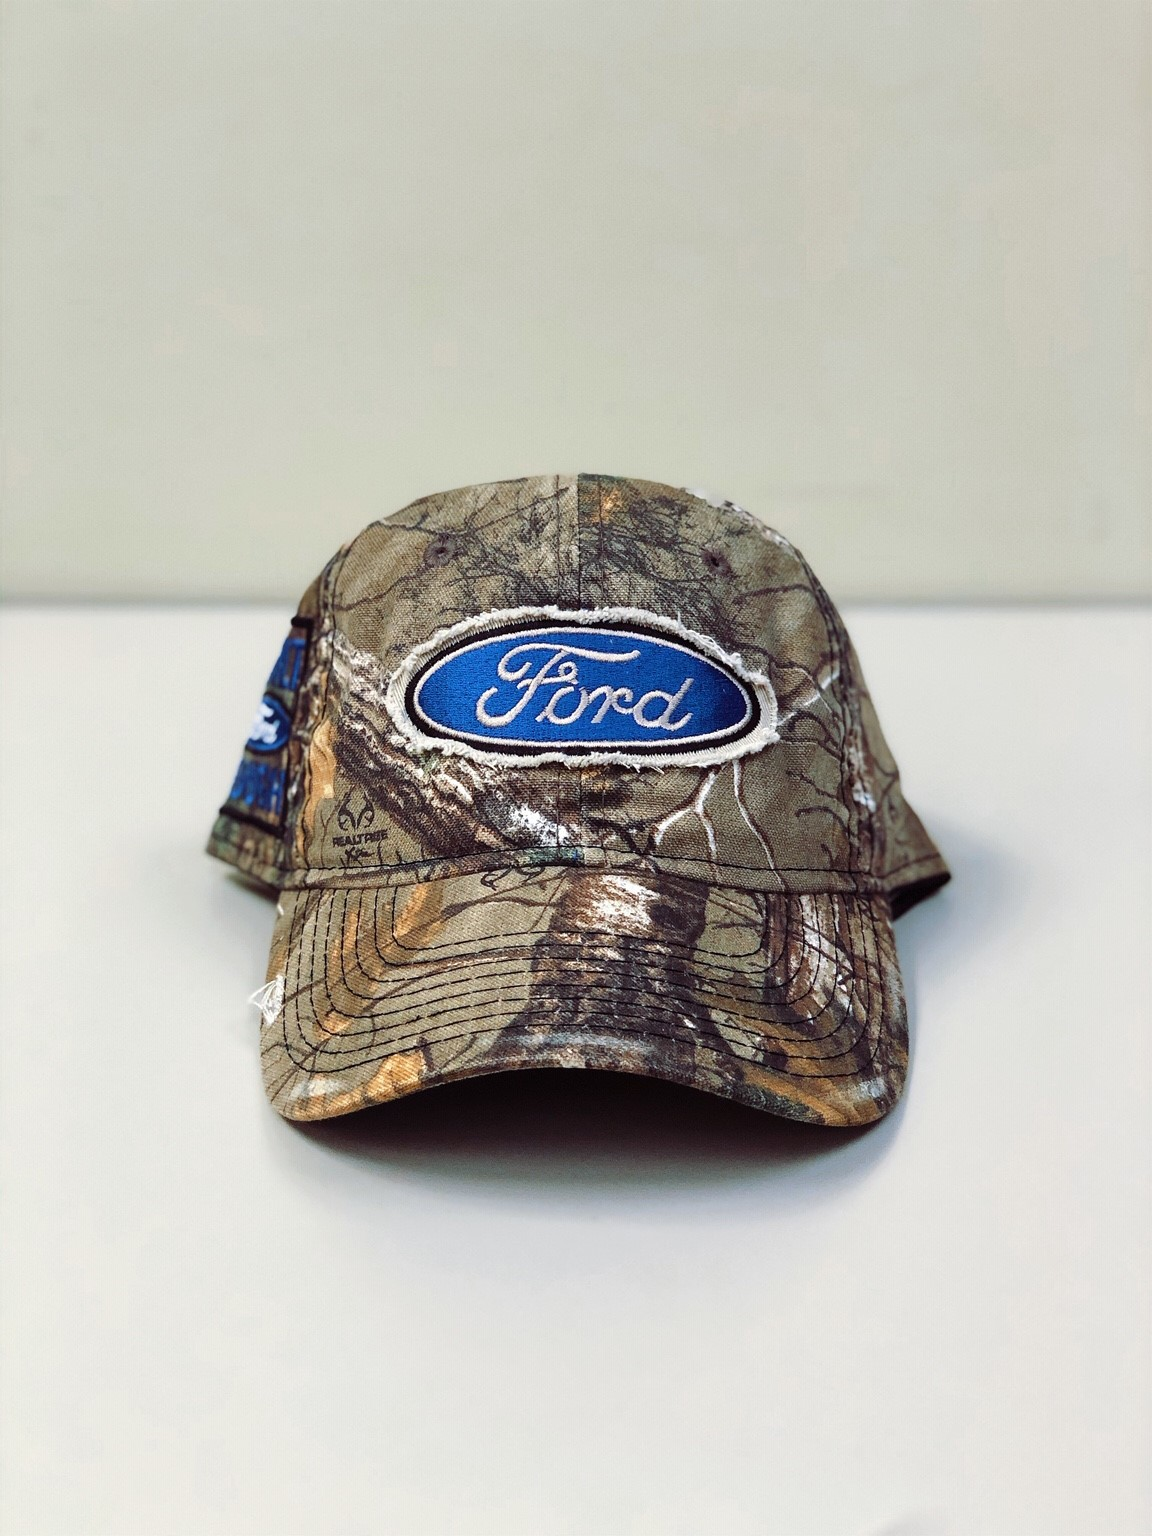 Ford Built Tough Cap Front View - Officially Licensed for sale by Pioneer Promo